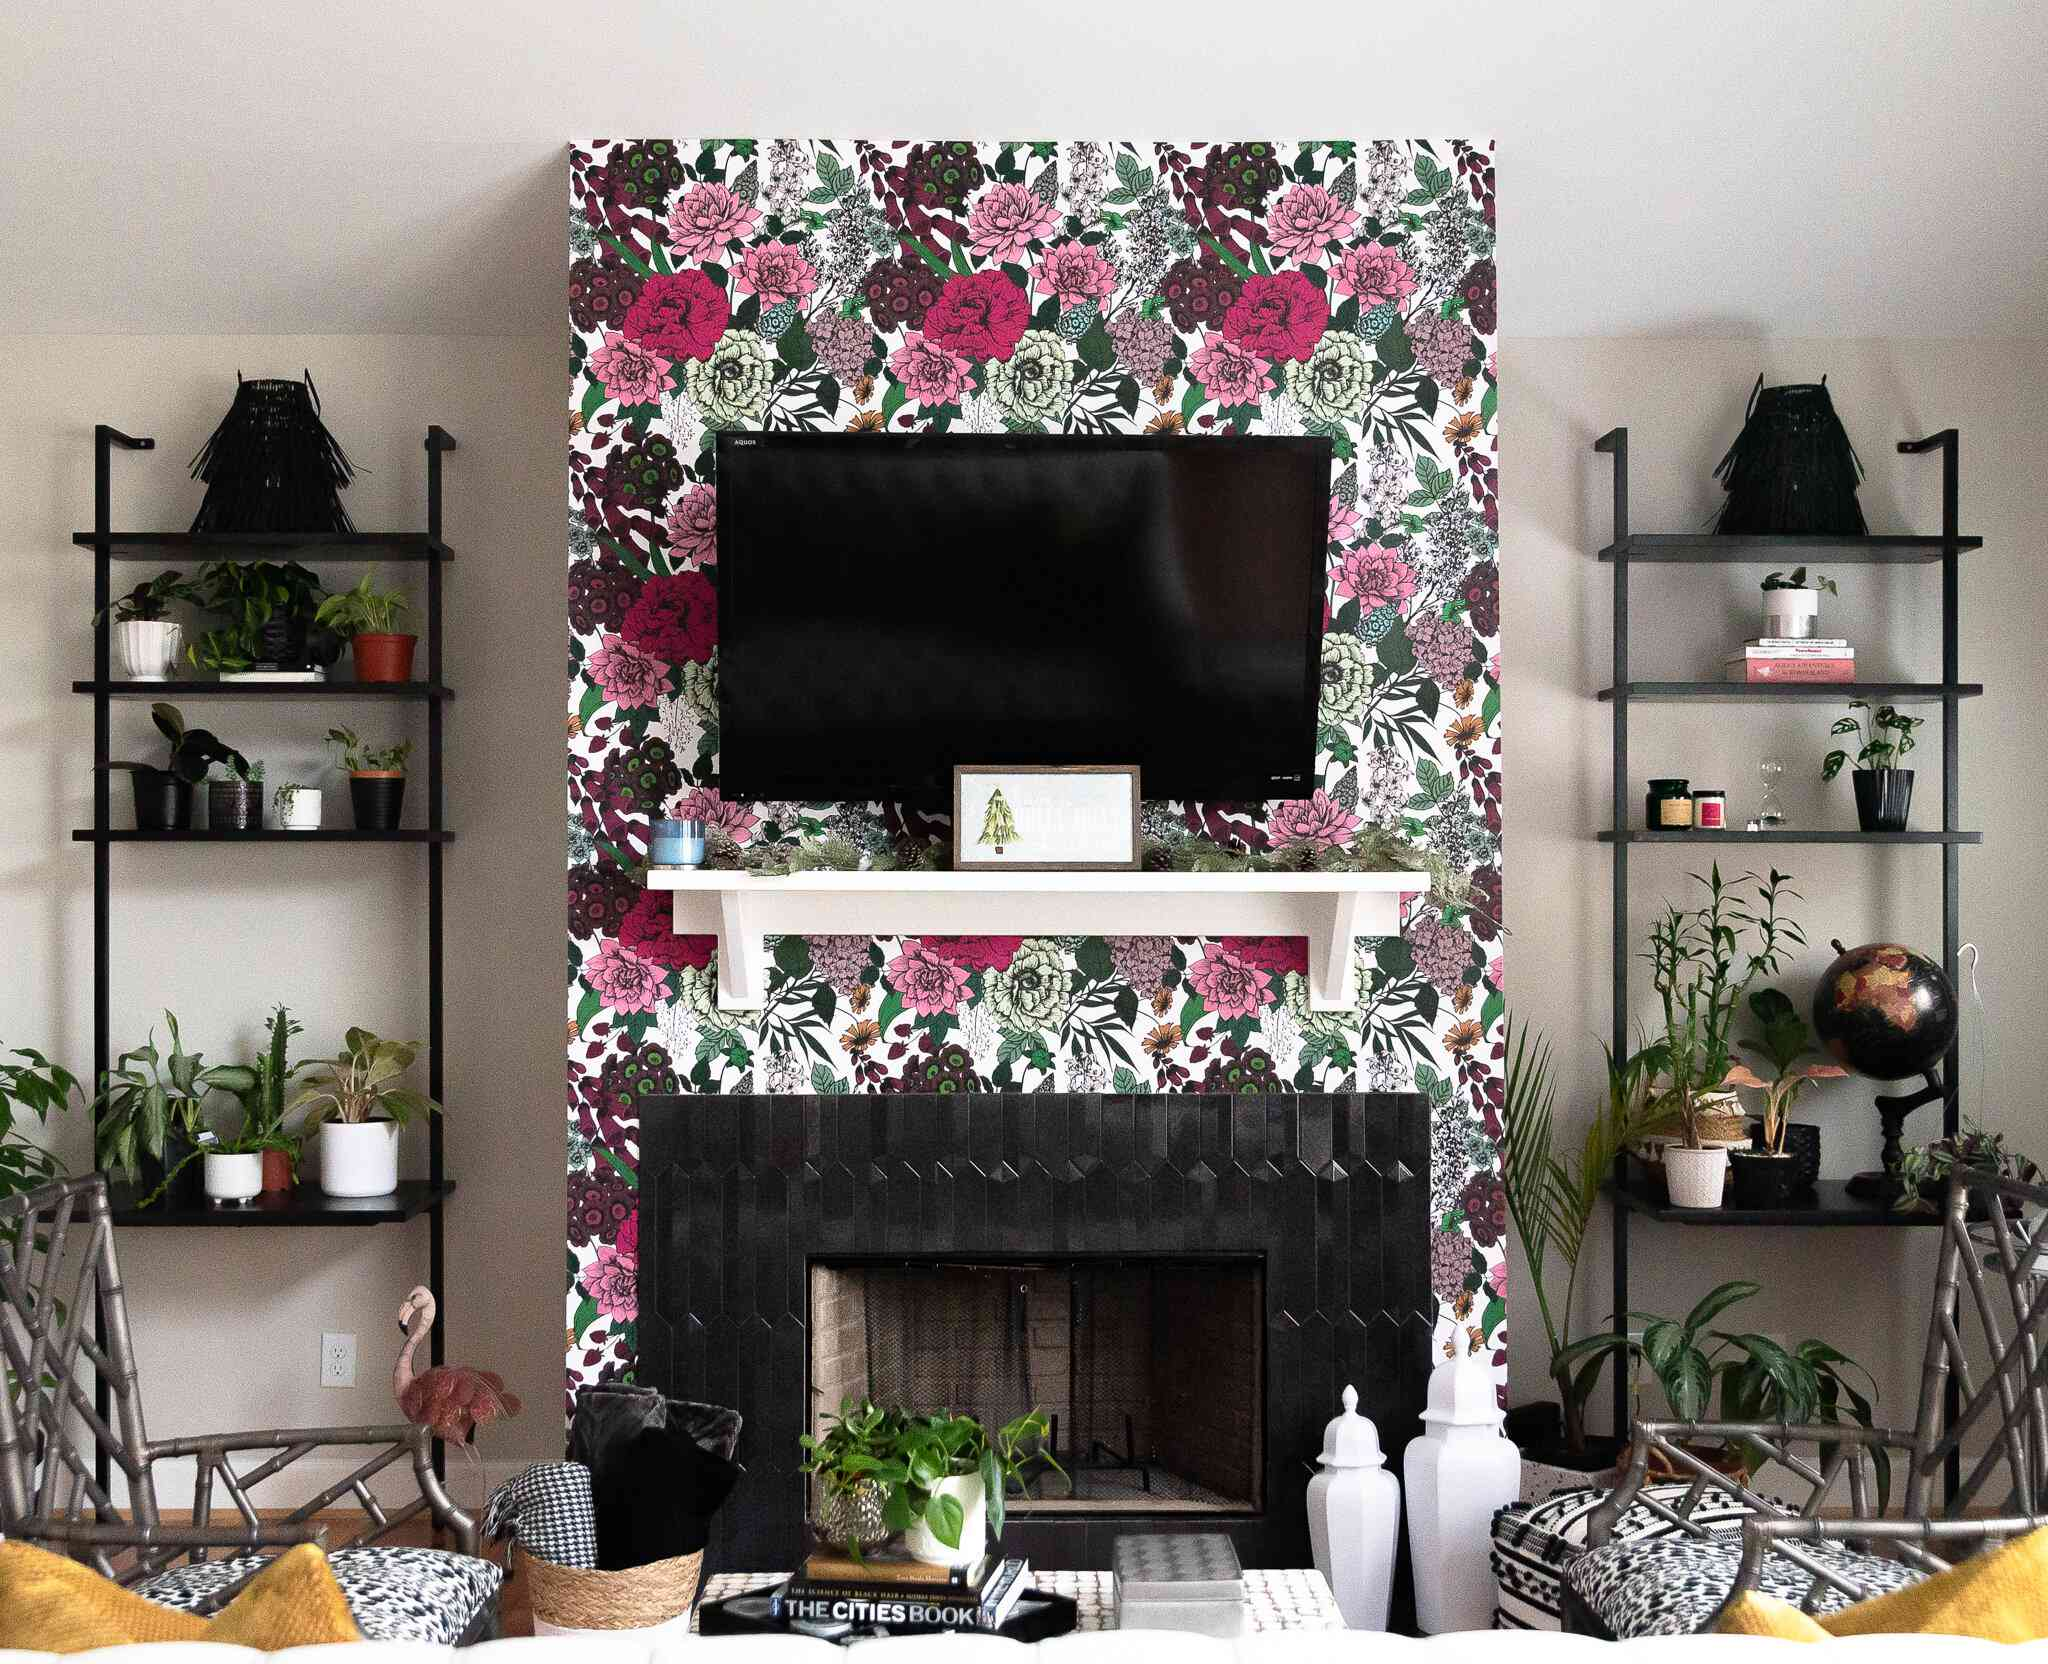 Living room with graphic floral wallpaper and plant shelves